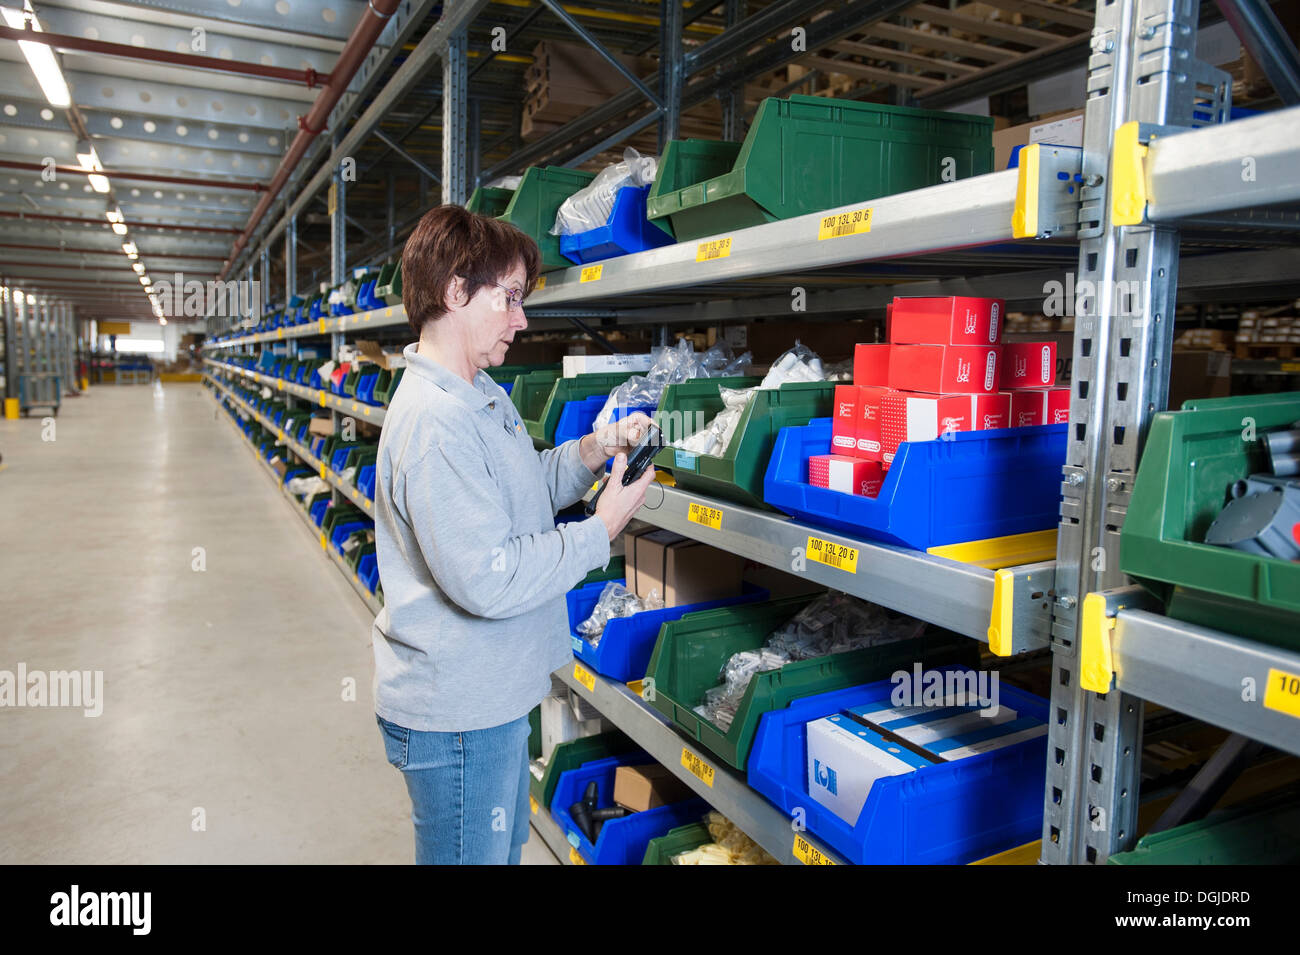 Female warehouse worker selecting item from shelving - Stock Image